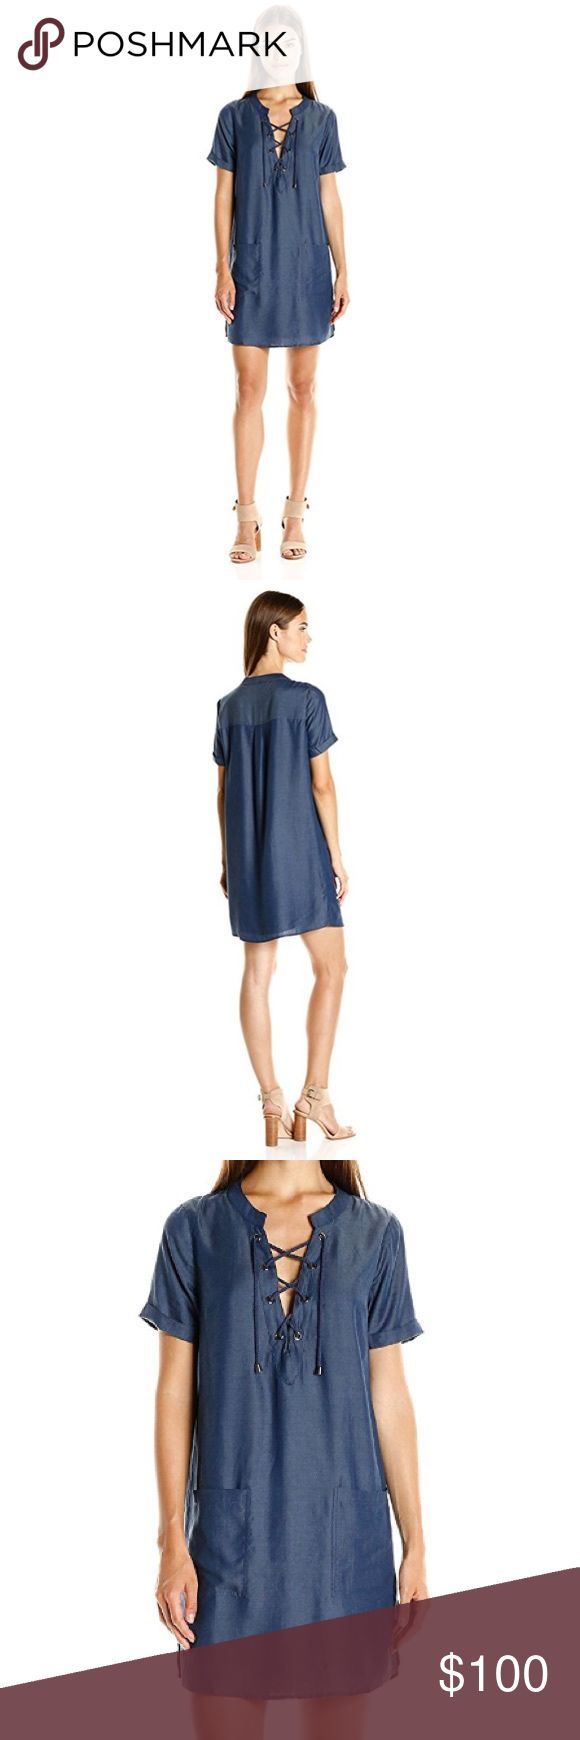 🎉SALE🎉 lovers and friends // shirtdress NWT Lovers and Friends shirt dress with front pockets and lace up neck. Imitates the denim shirtdress look with sexier material- gorgeous and flattering! Lovers + Friends Dresses